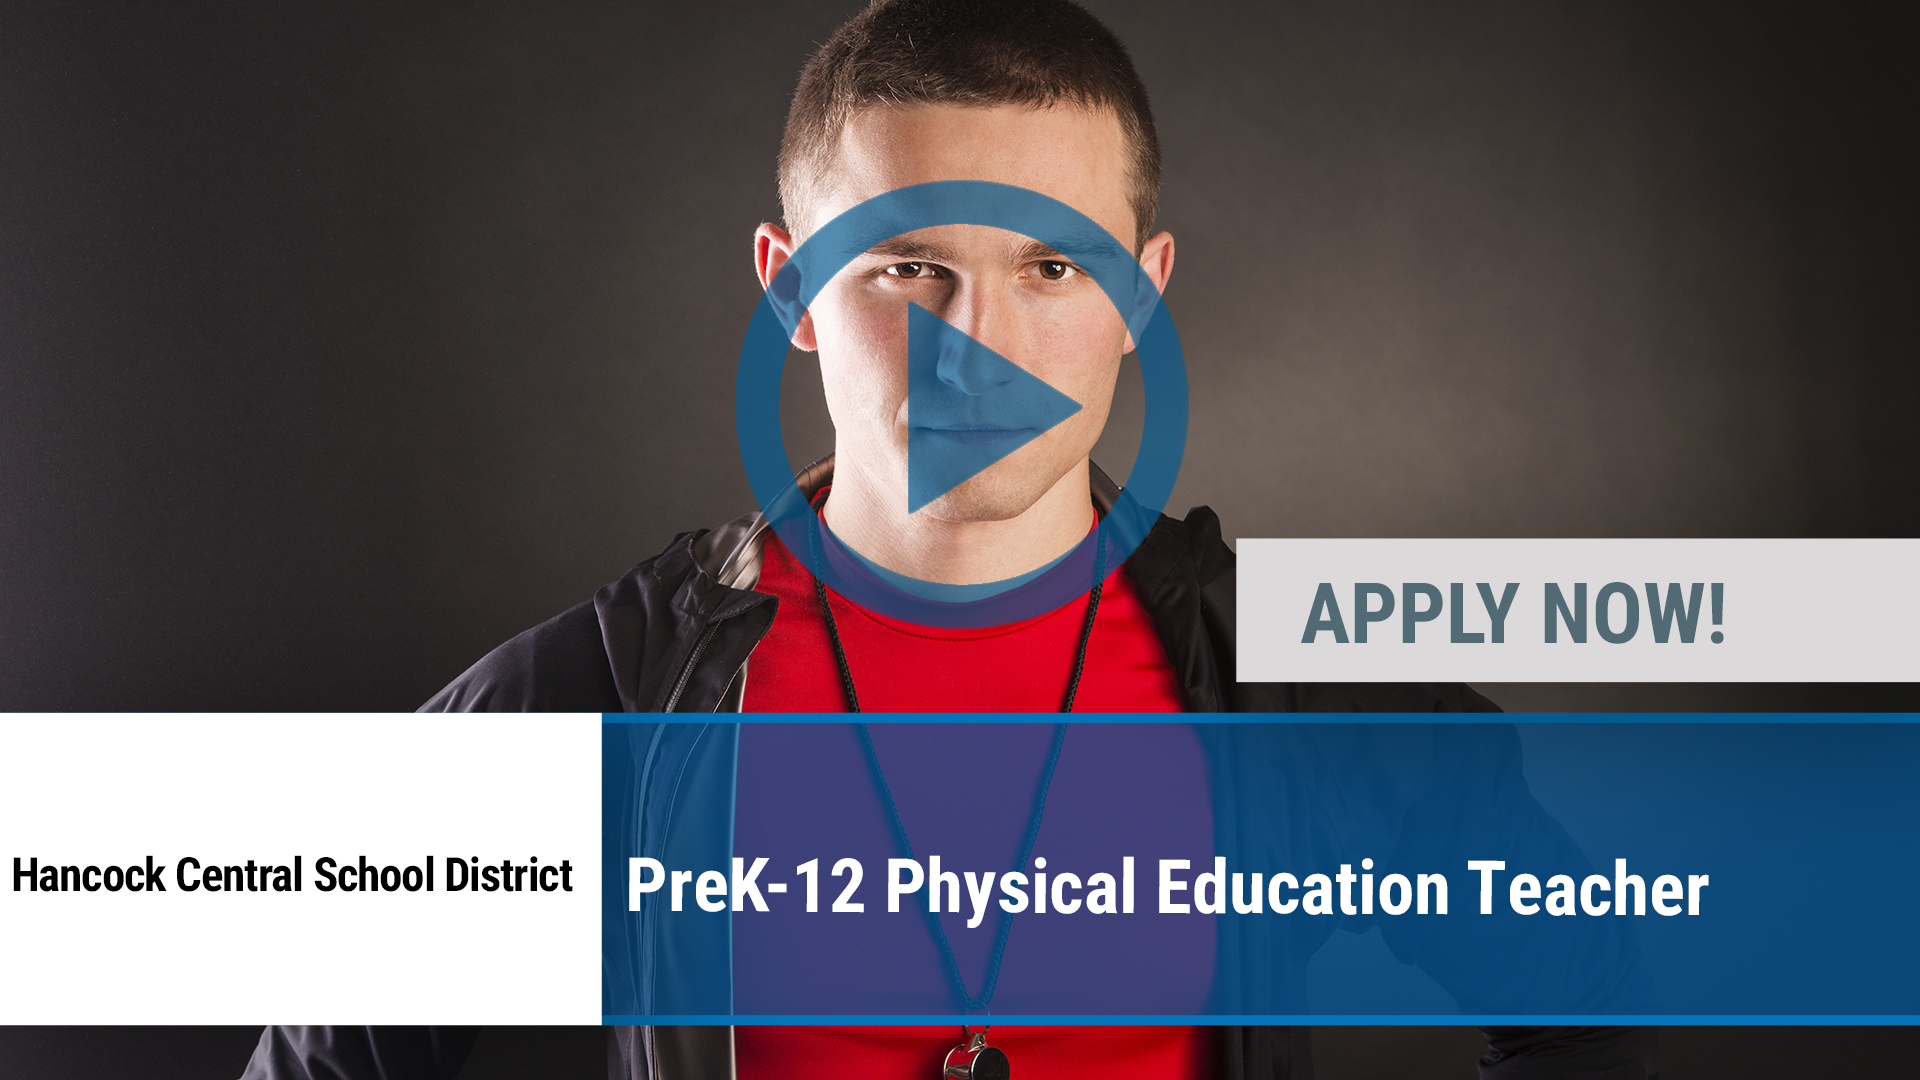 Watch our careers video for available job opening PreK-12 Physical Education Teacher in Hancock, NY